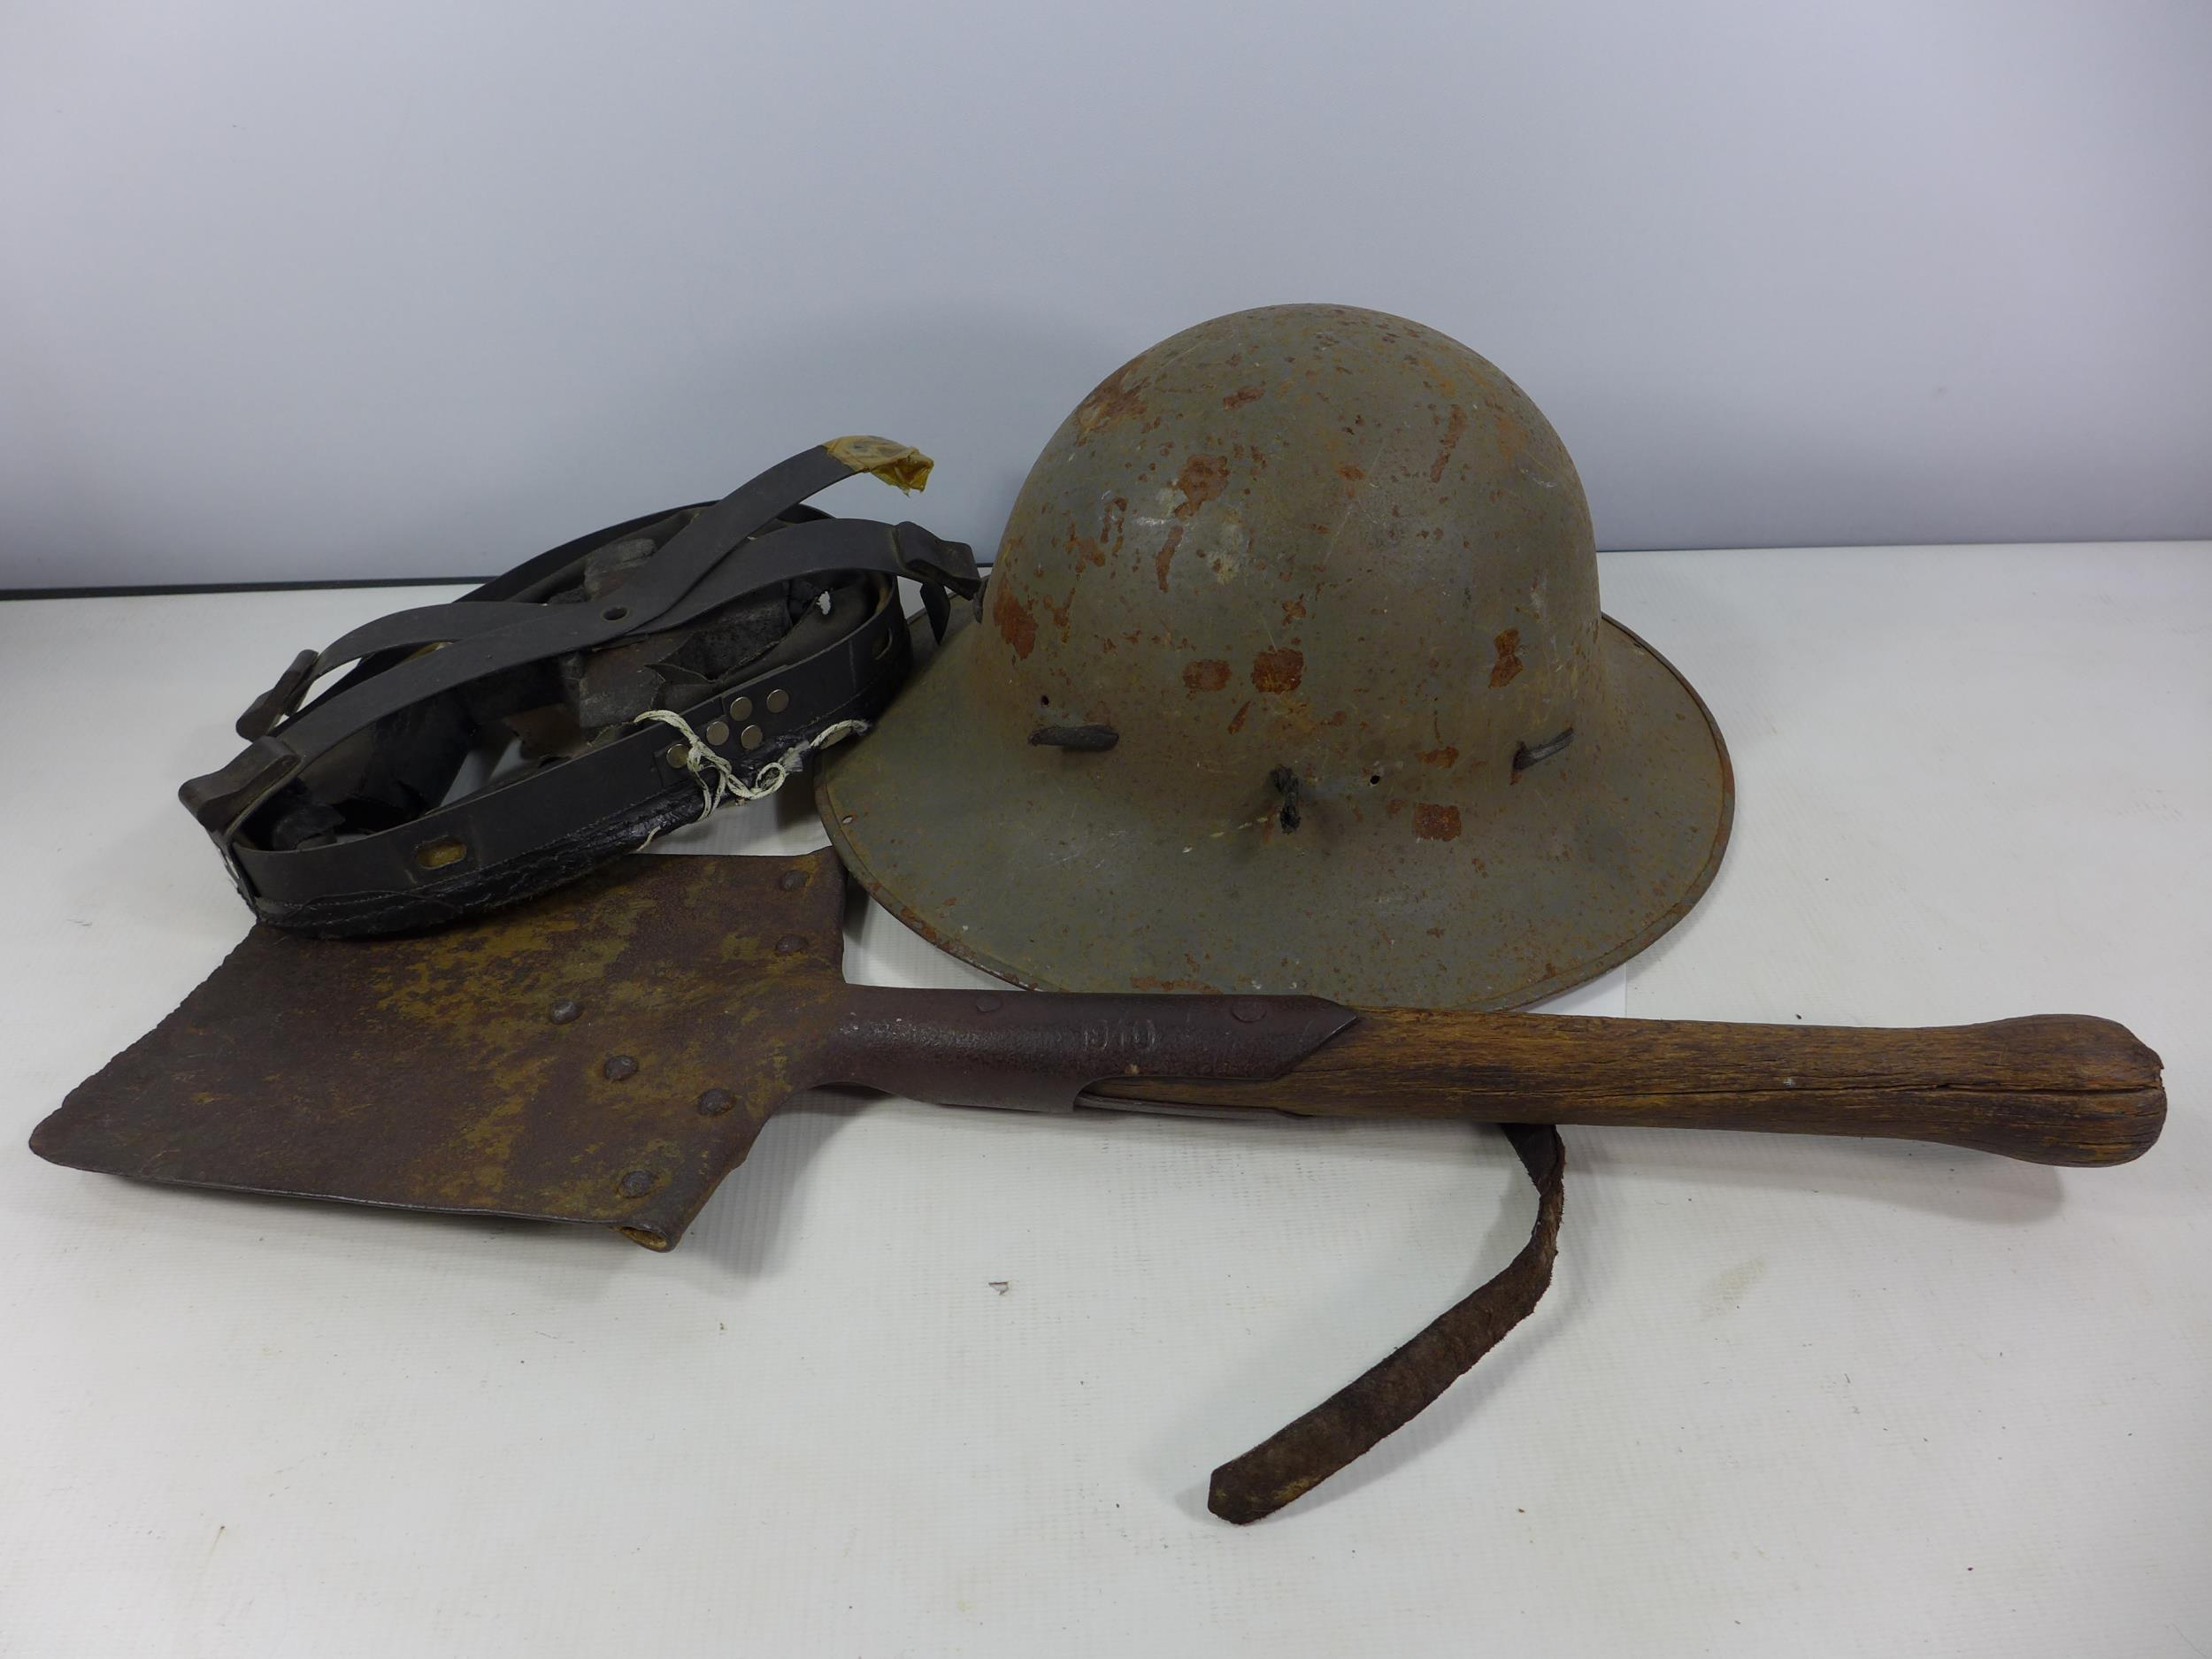 A WORLD WAR II ENTRENCHING TOOL DATED 1940, LENGTH 53CM, AND A GREY PAINTED MILITARY HELMET DATED